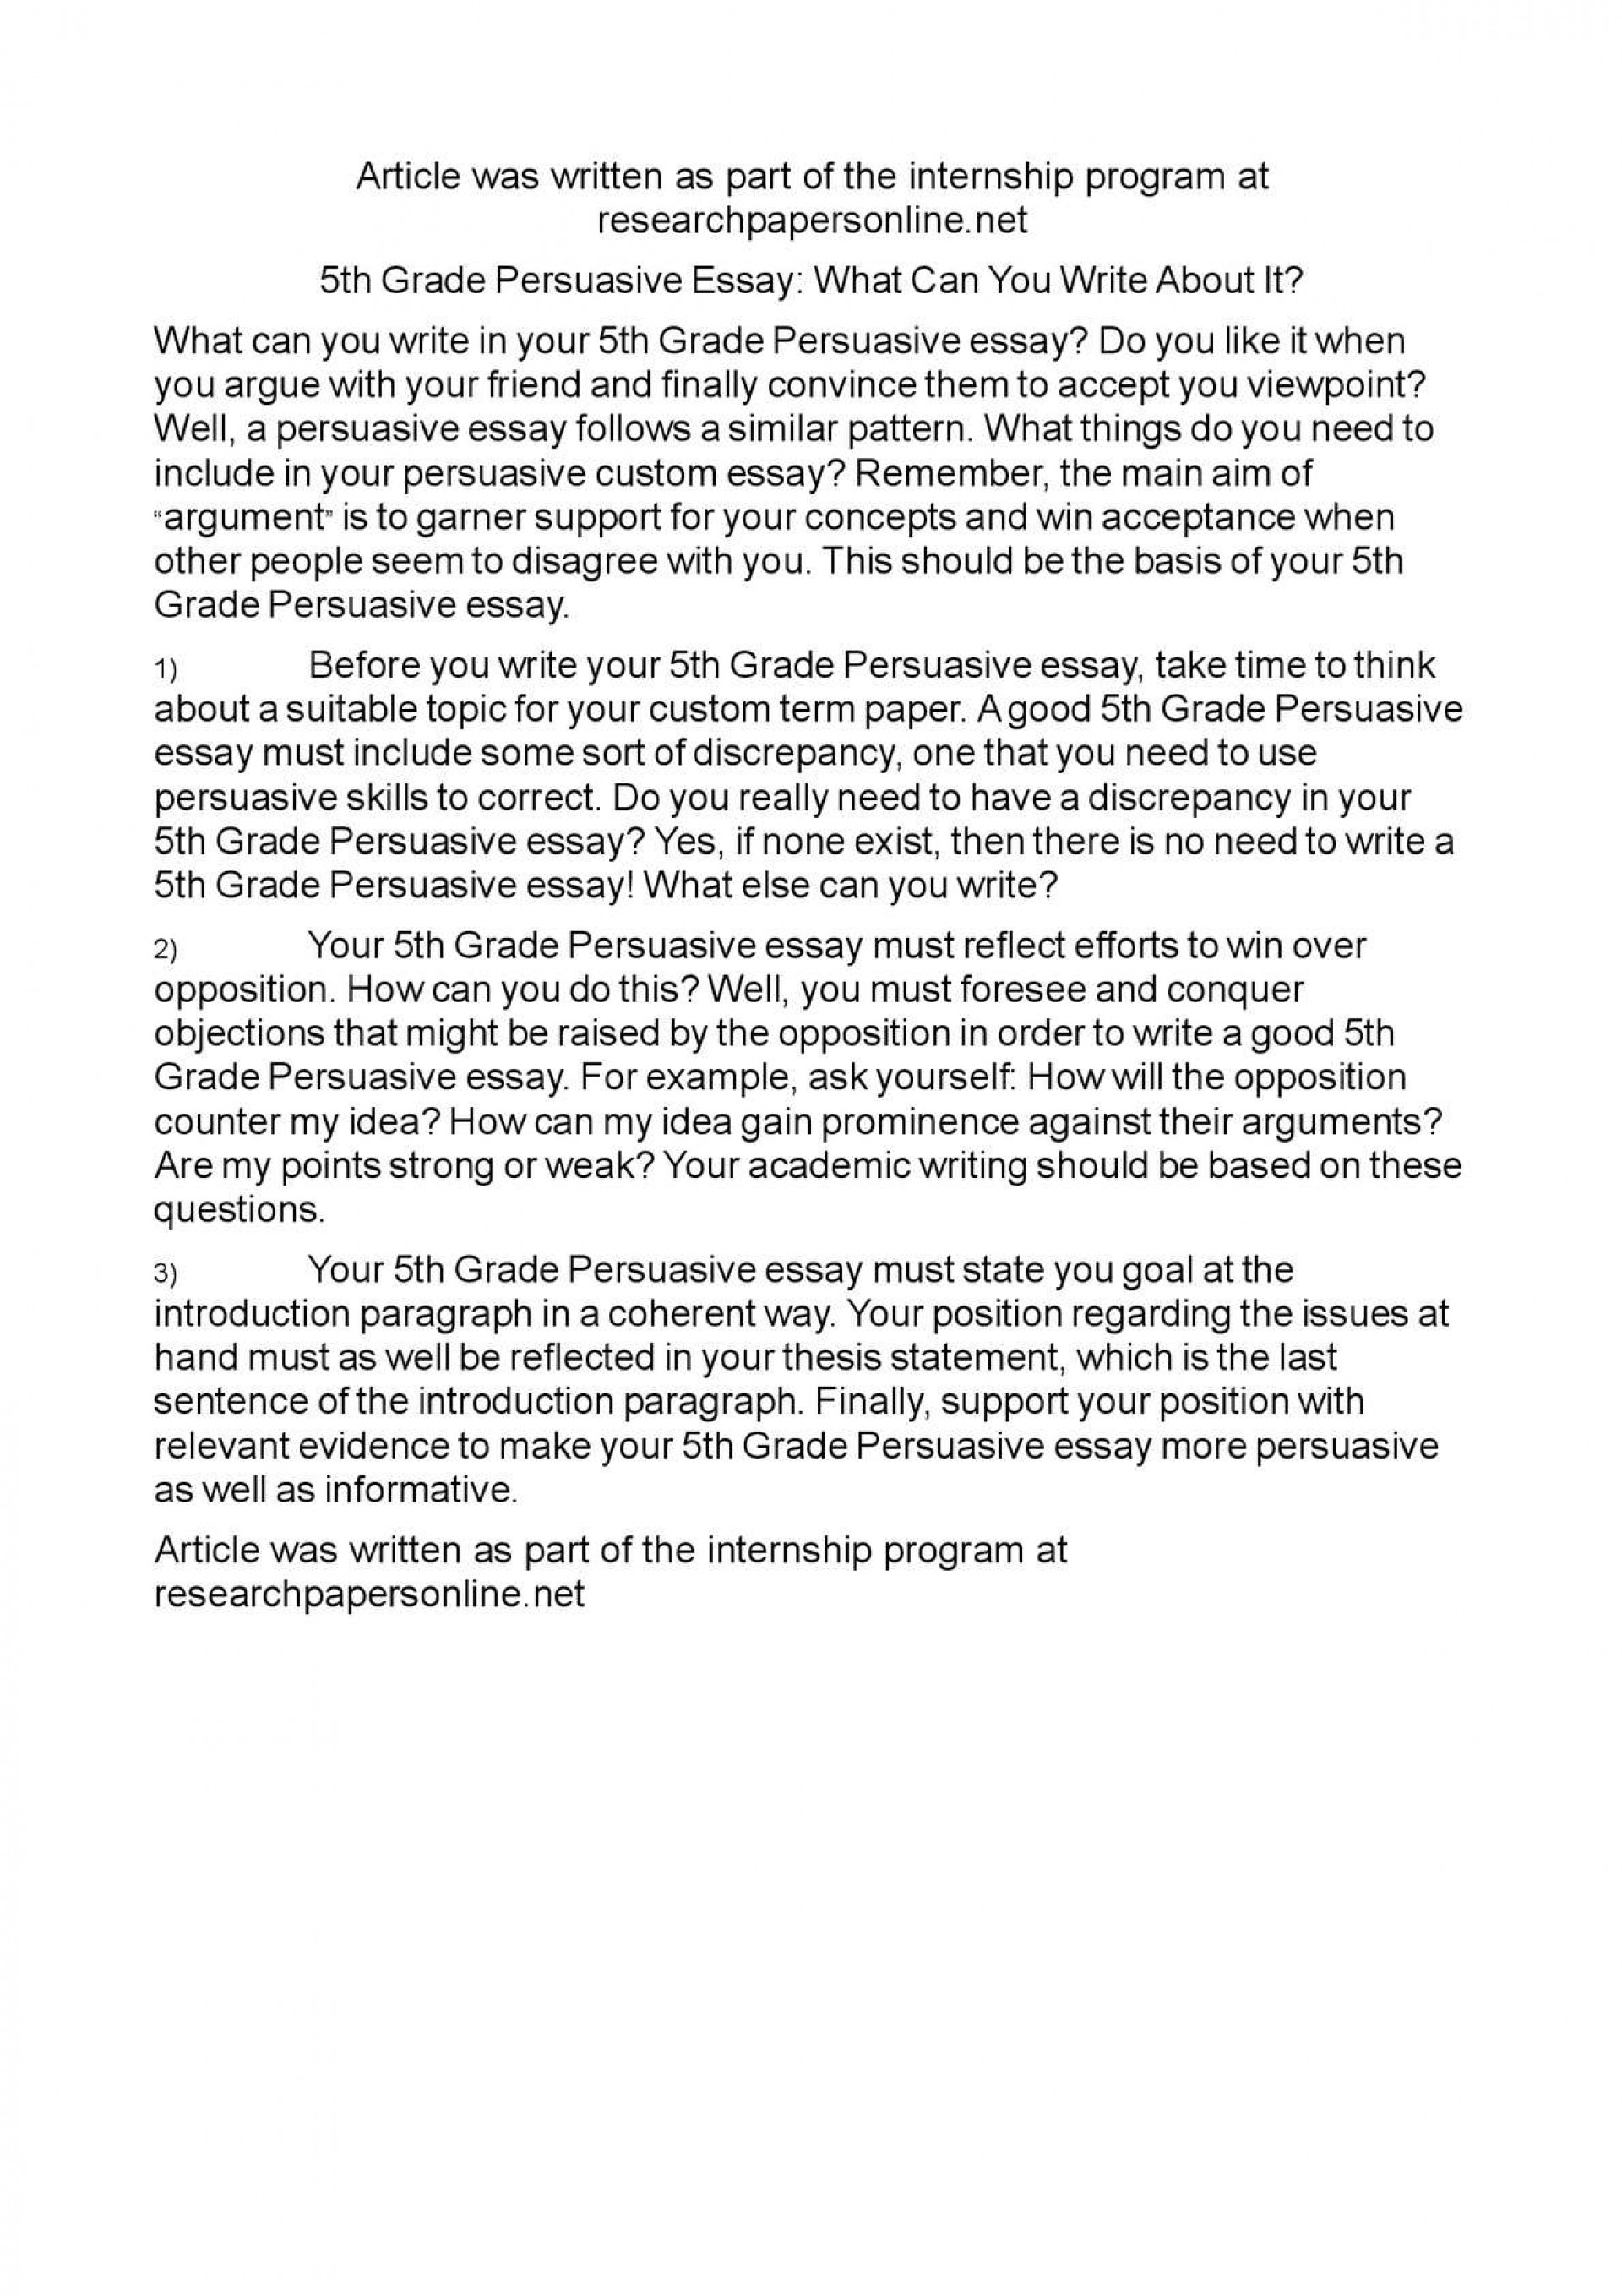 005 Persuasive Essay Writing For 5th Grade Example Impressive Essays Written By Fifth Graders Sample A 1920